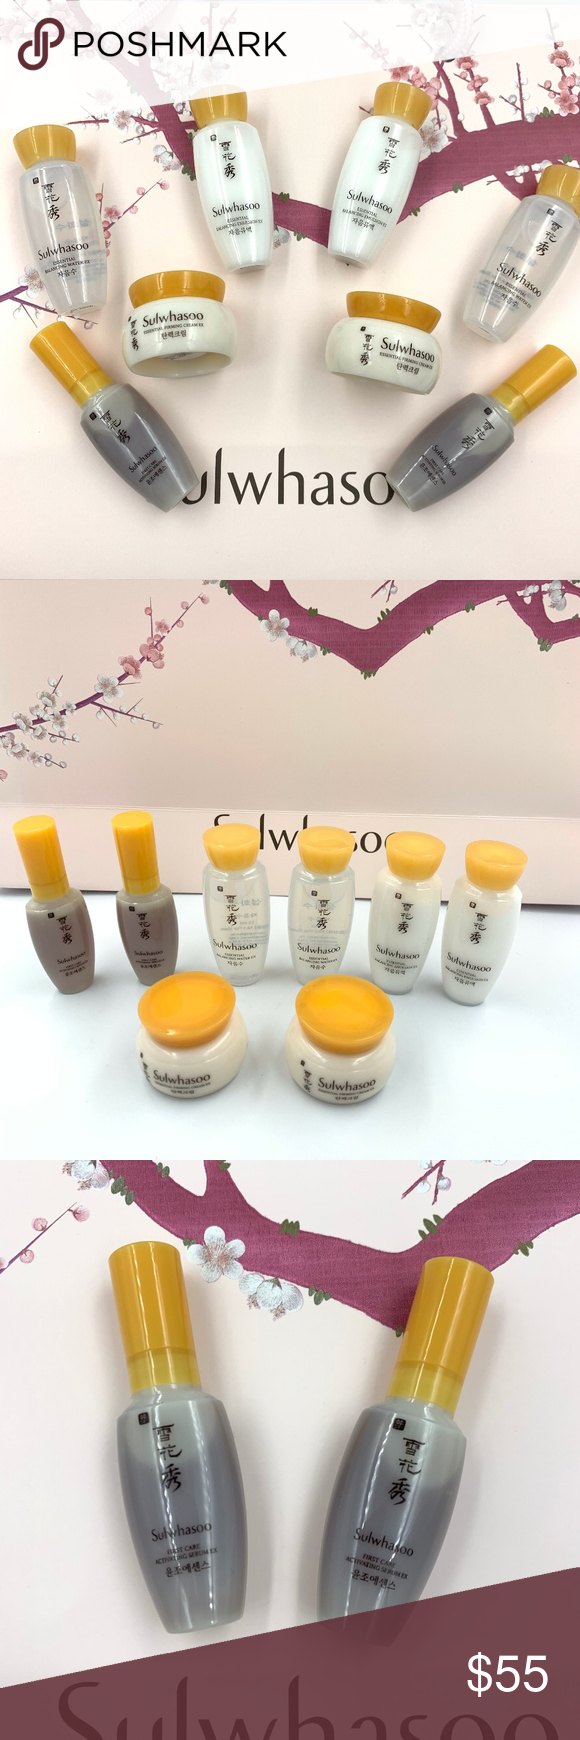 8 Sulwhasoo Travel Kit set Amore Pacific 8x Sulwhasoo Serum Balancing Water Emulsion Renewing Cream Travel Sample Kit set Korean -2x. First Care Activating Serum EX 8ml An essential regimen first-step serum formulated with JAUM Balancing Complex -2x. Essential Balancing Water EX 15ml Formulated with Korean medicinal herbs Soothes and calms skin Recommended -2x. Essential Balancing Emulsion EX 15ml Improves skin's ability to retain moisture Keeps skin supple and smooth.  -2x. Concentrated Ginseng